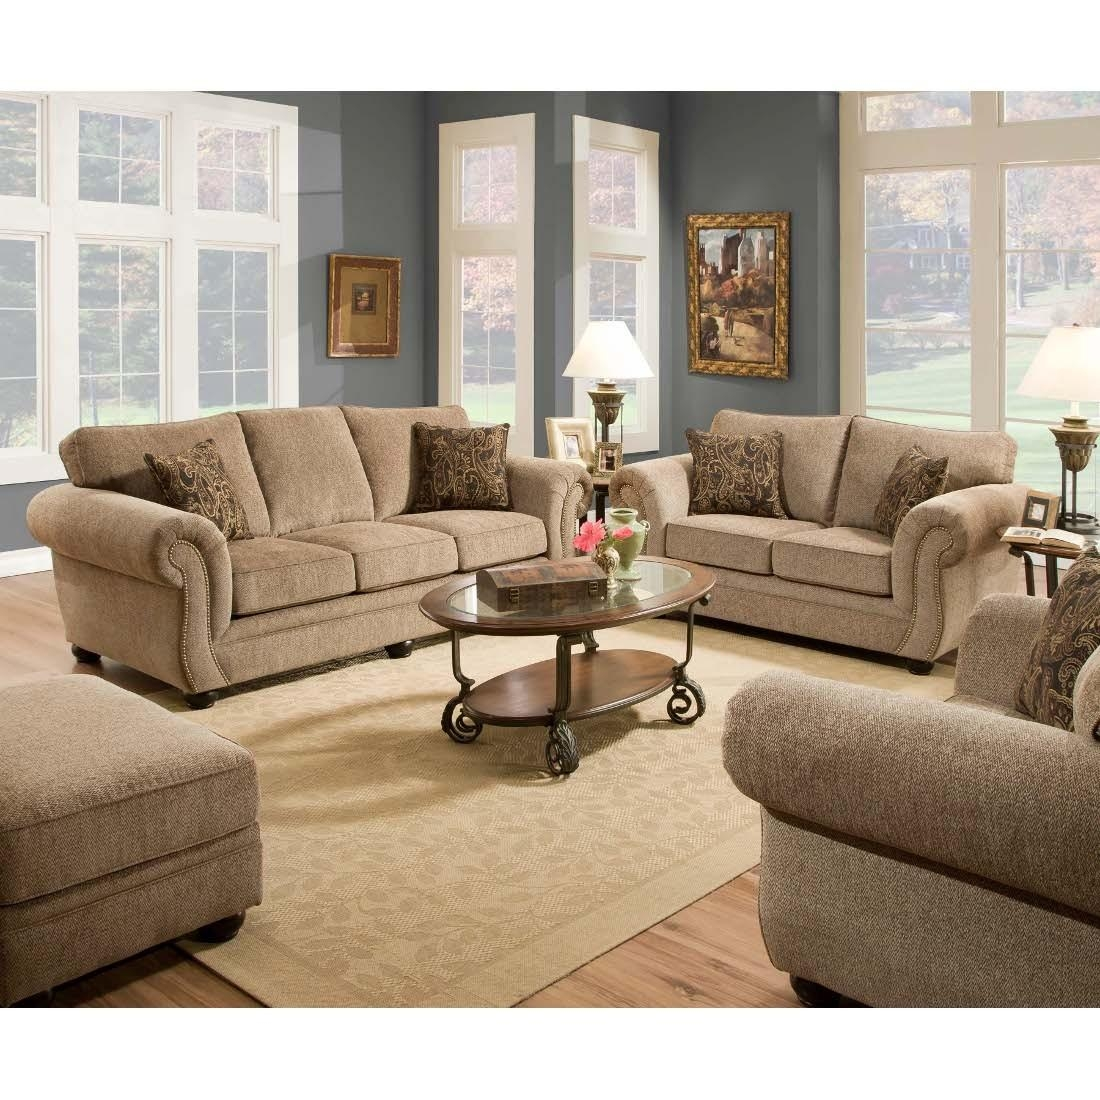 Sofas Center : Simmons Sofas And Loveseats Sofa Loveseat Ventura Pertaining To Simmons Sofas And Loveseats (View 5 of 20)